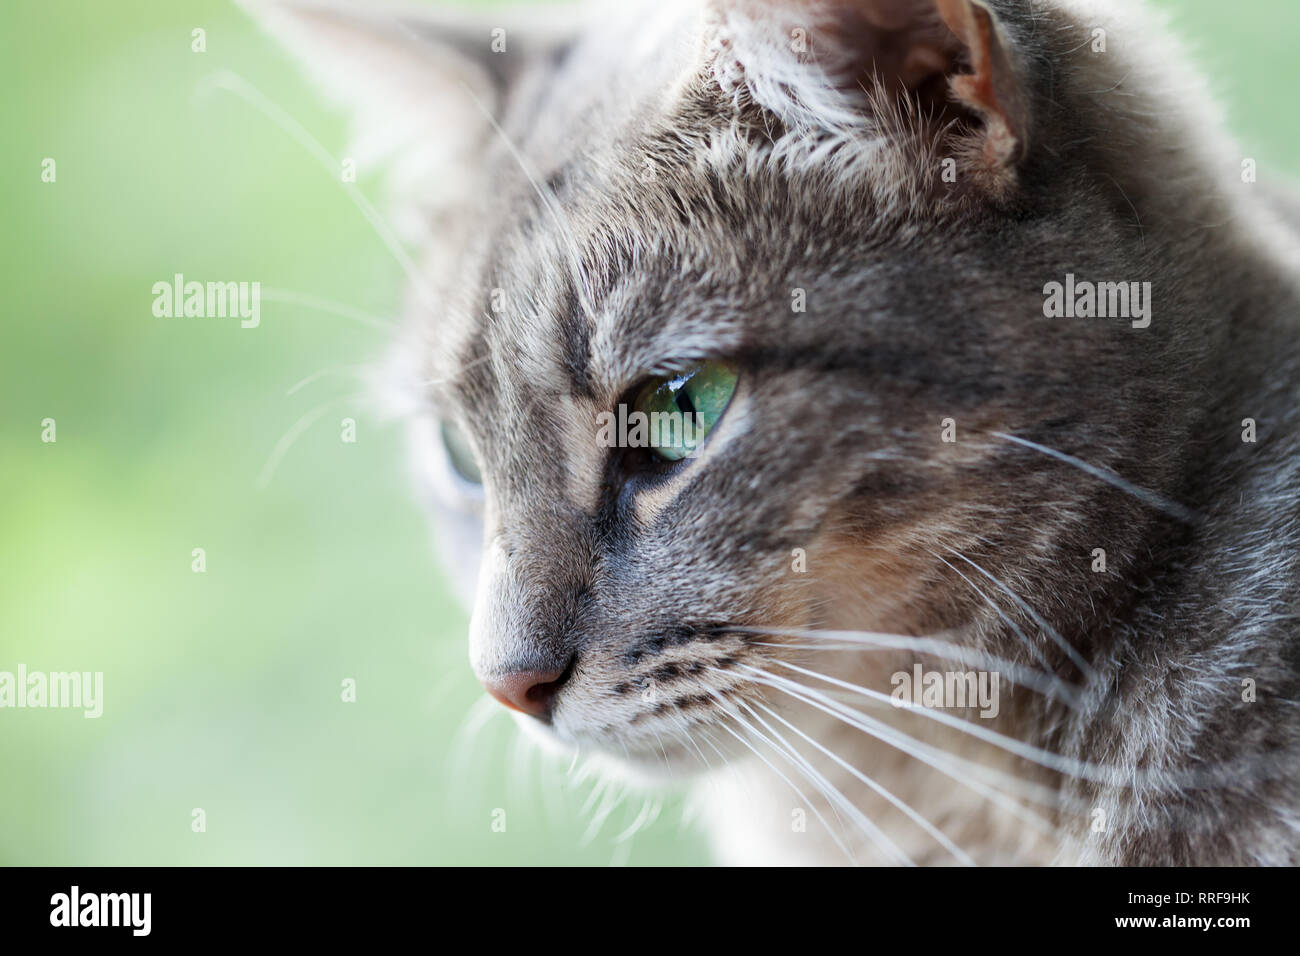 12ea8c8453de75 Portrait of a gray cat with green eyes . Close-up view. Selective focus.